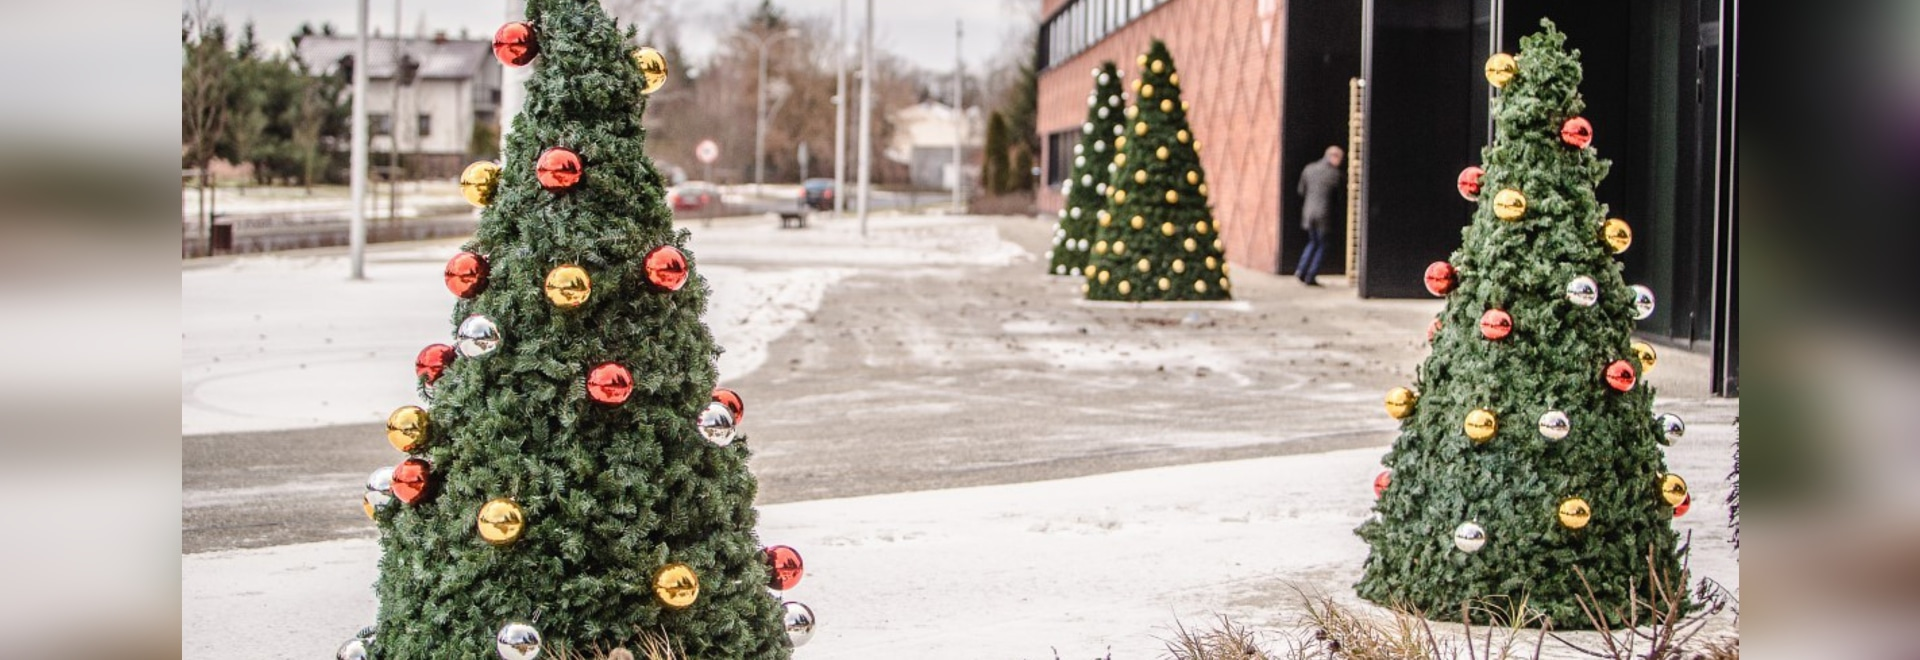 Christmas Covers on the Flower Constructions - terrachristmas.com